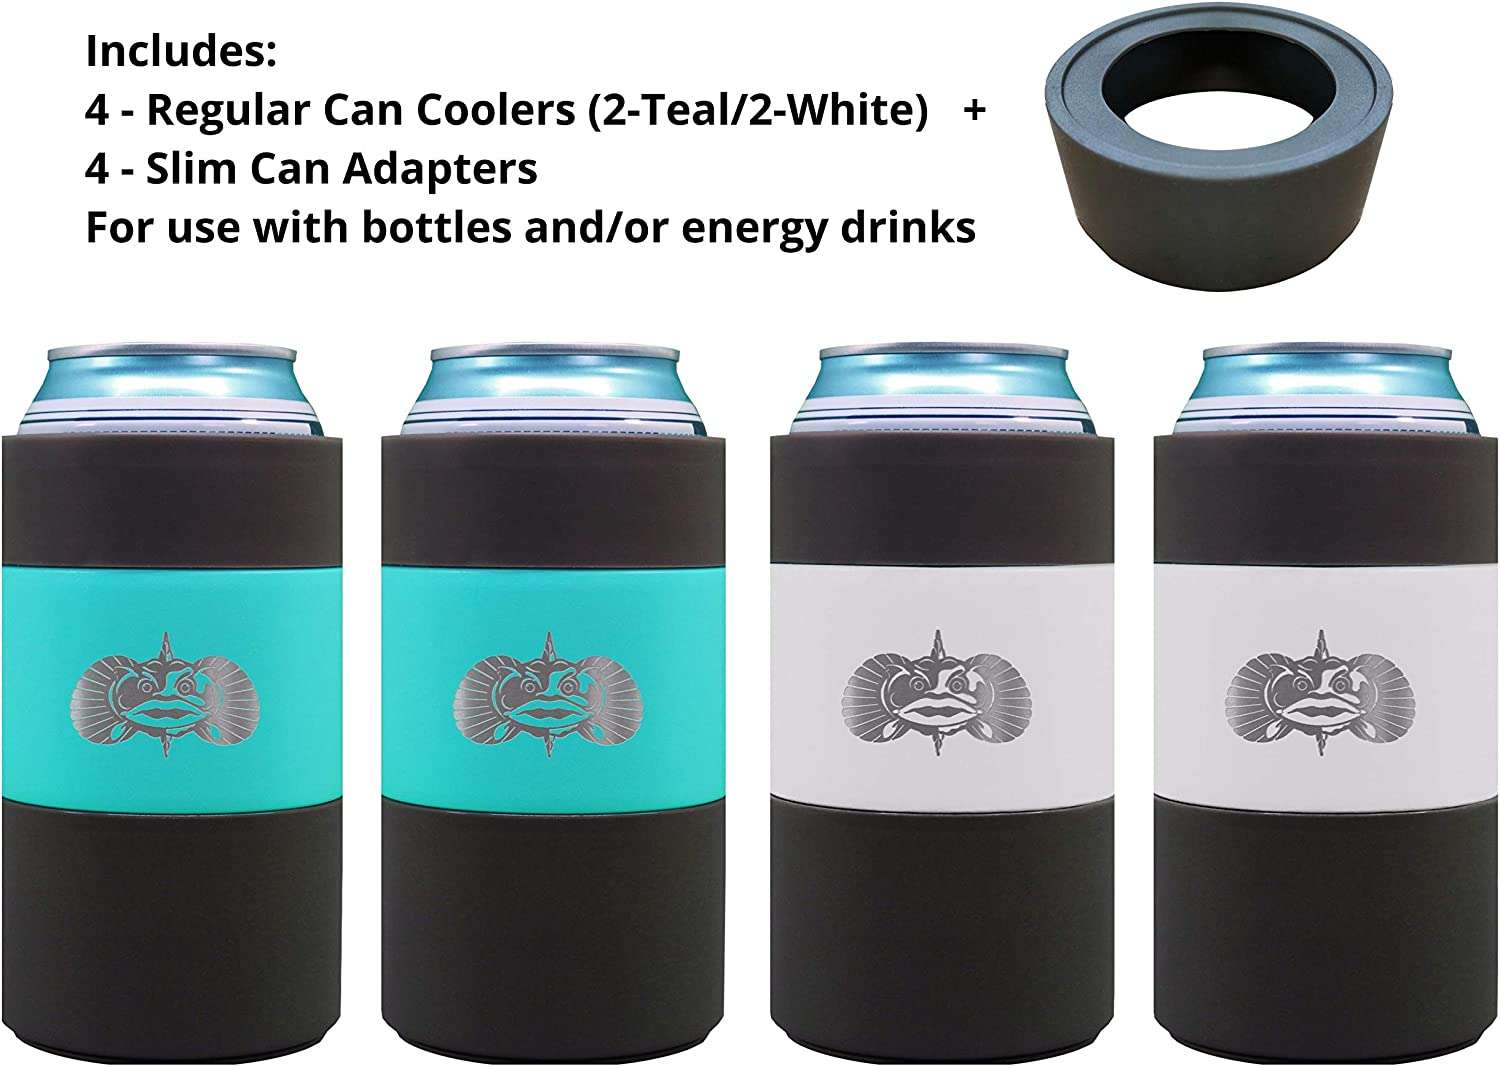 Toadfish Can Cooler - Non-Tipping Suction Cup Can Cooler - Double Wall Vacuum Insulation Insulated Can Cooler Designed to Stay Upright and Not Spill - Stainless Steel Construction